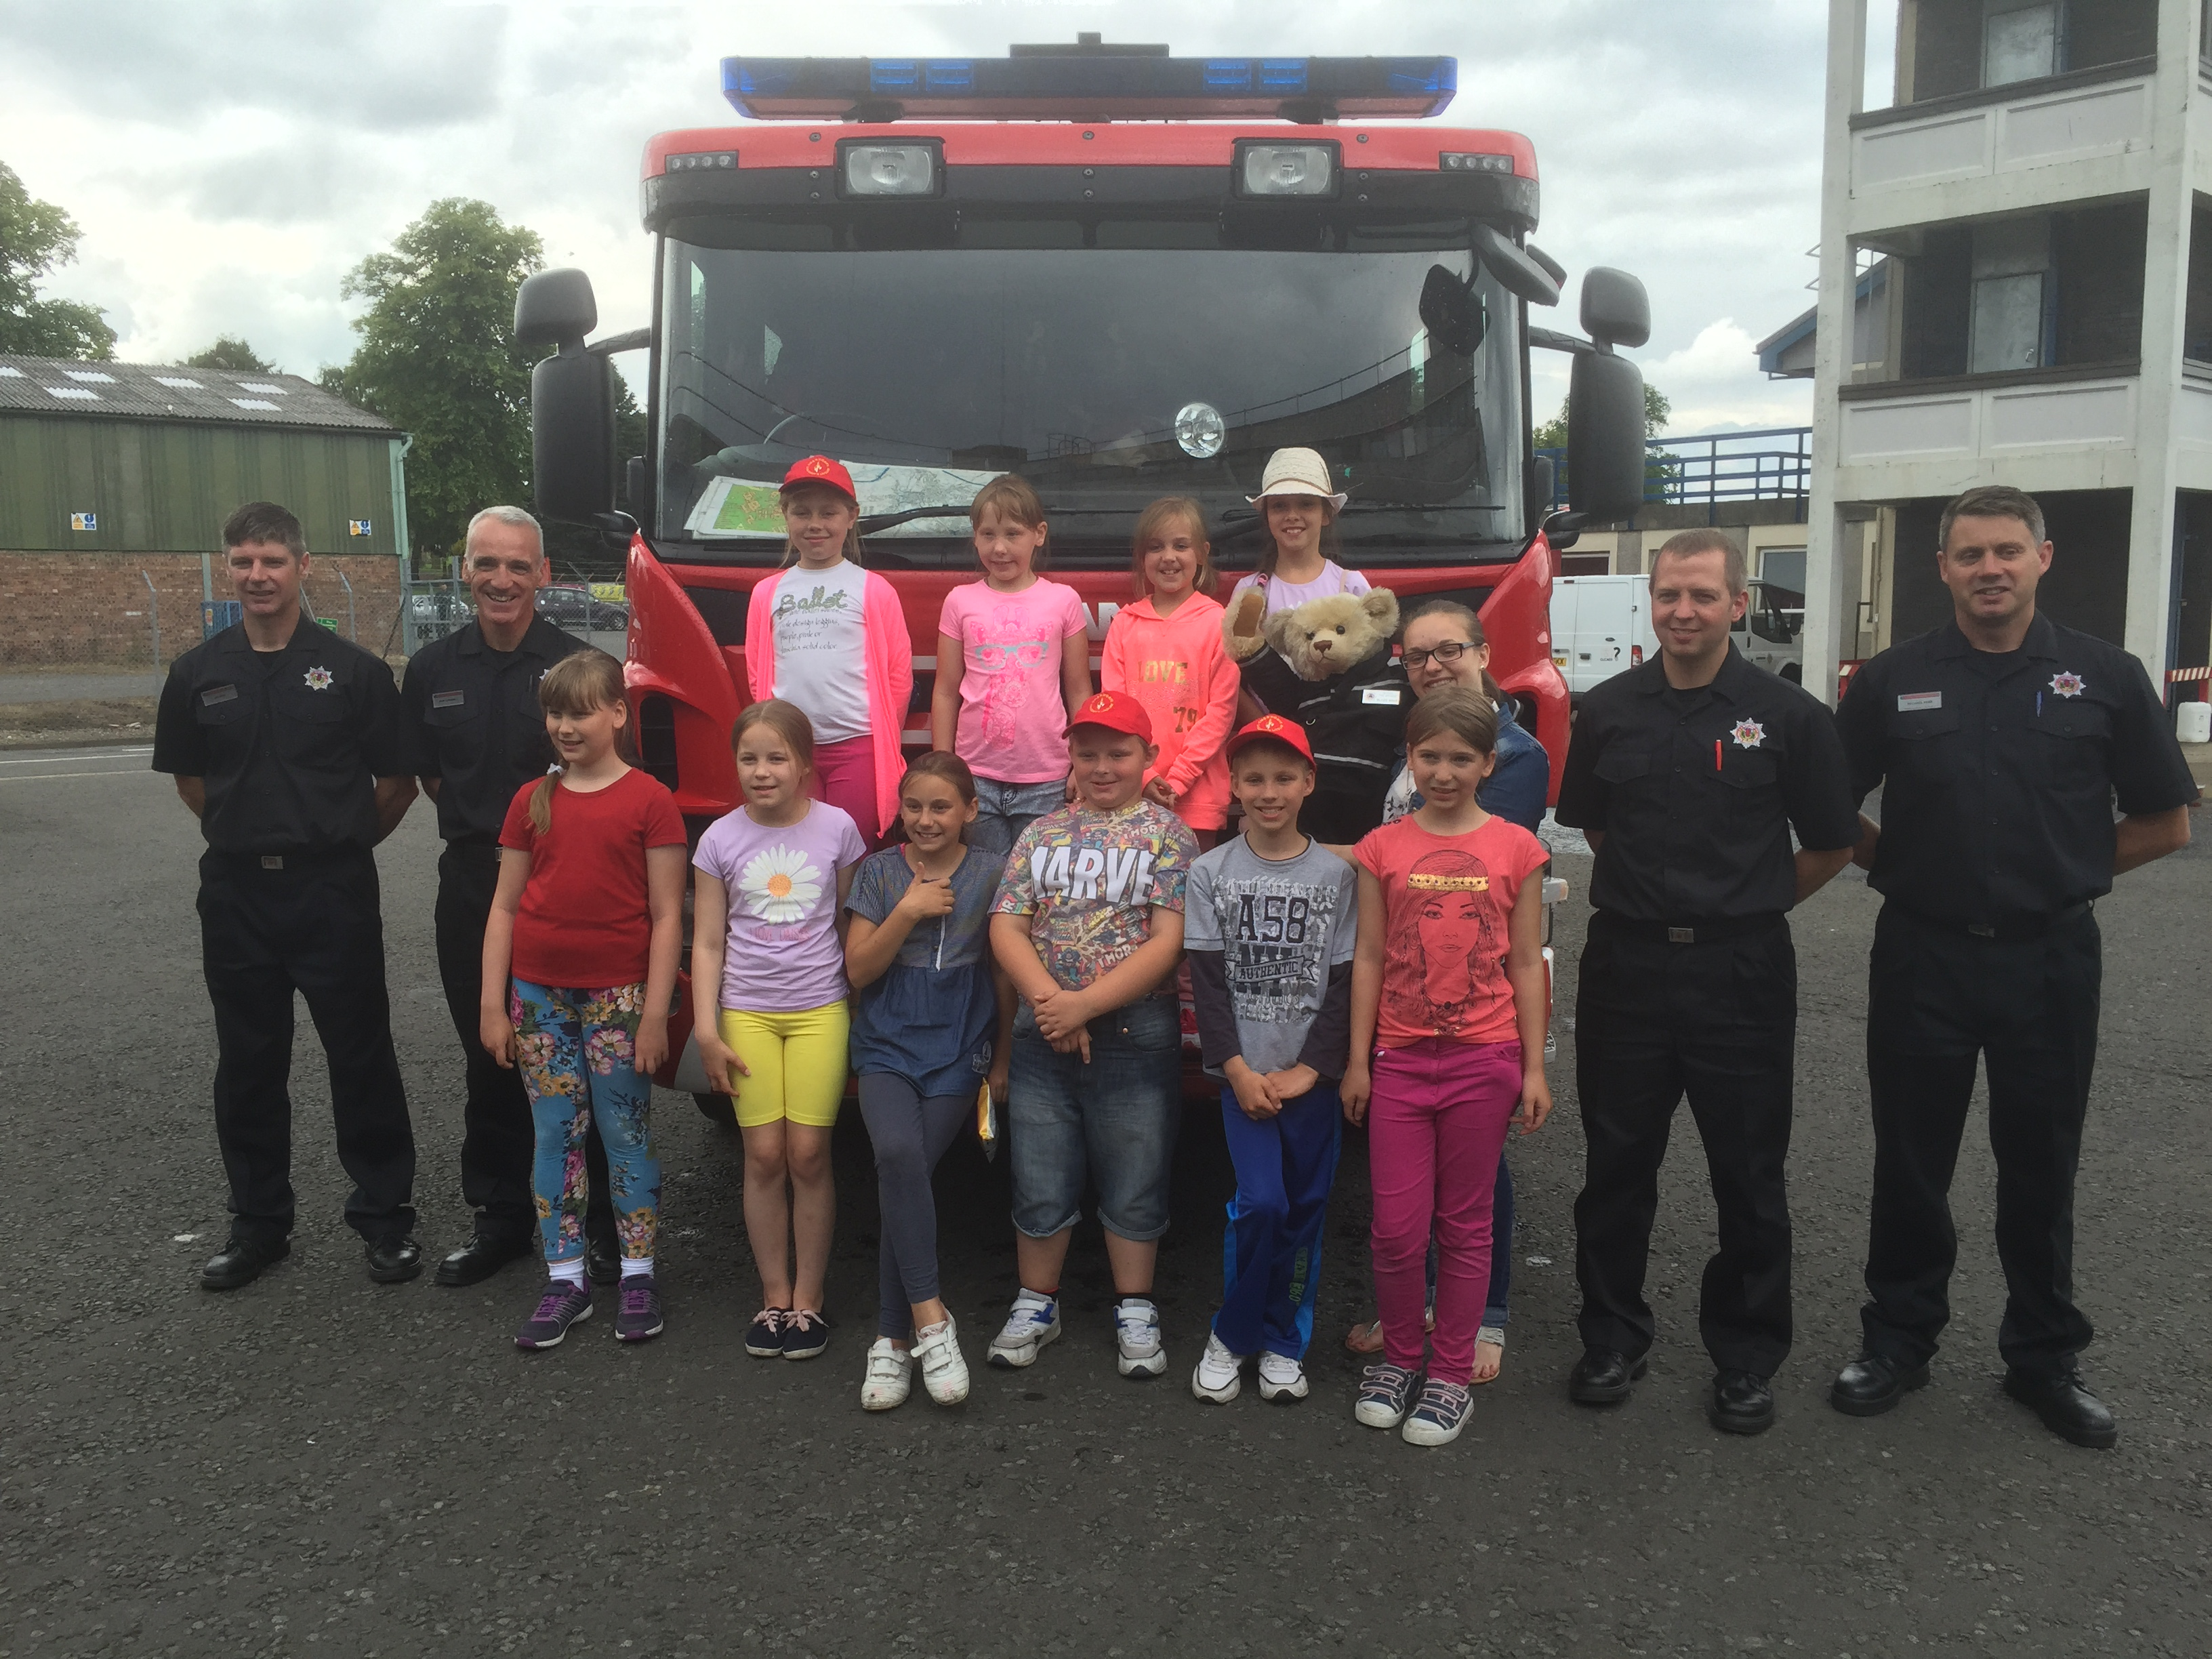 Perth fire crew give Chernobyl kids tour of fire station during UK trip